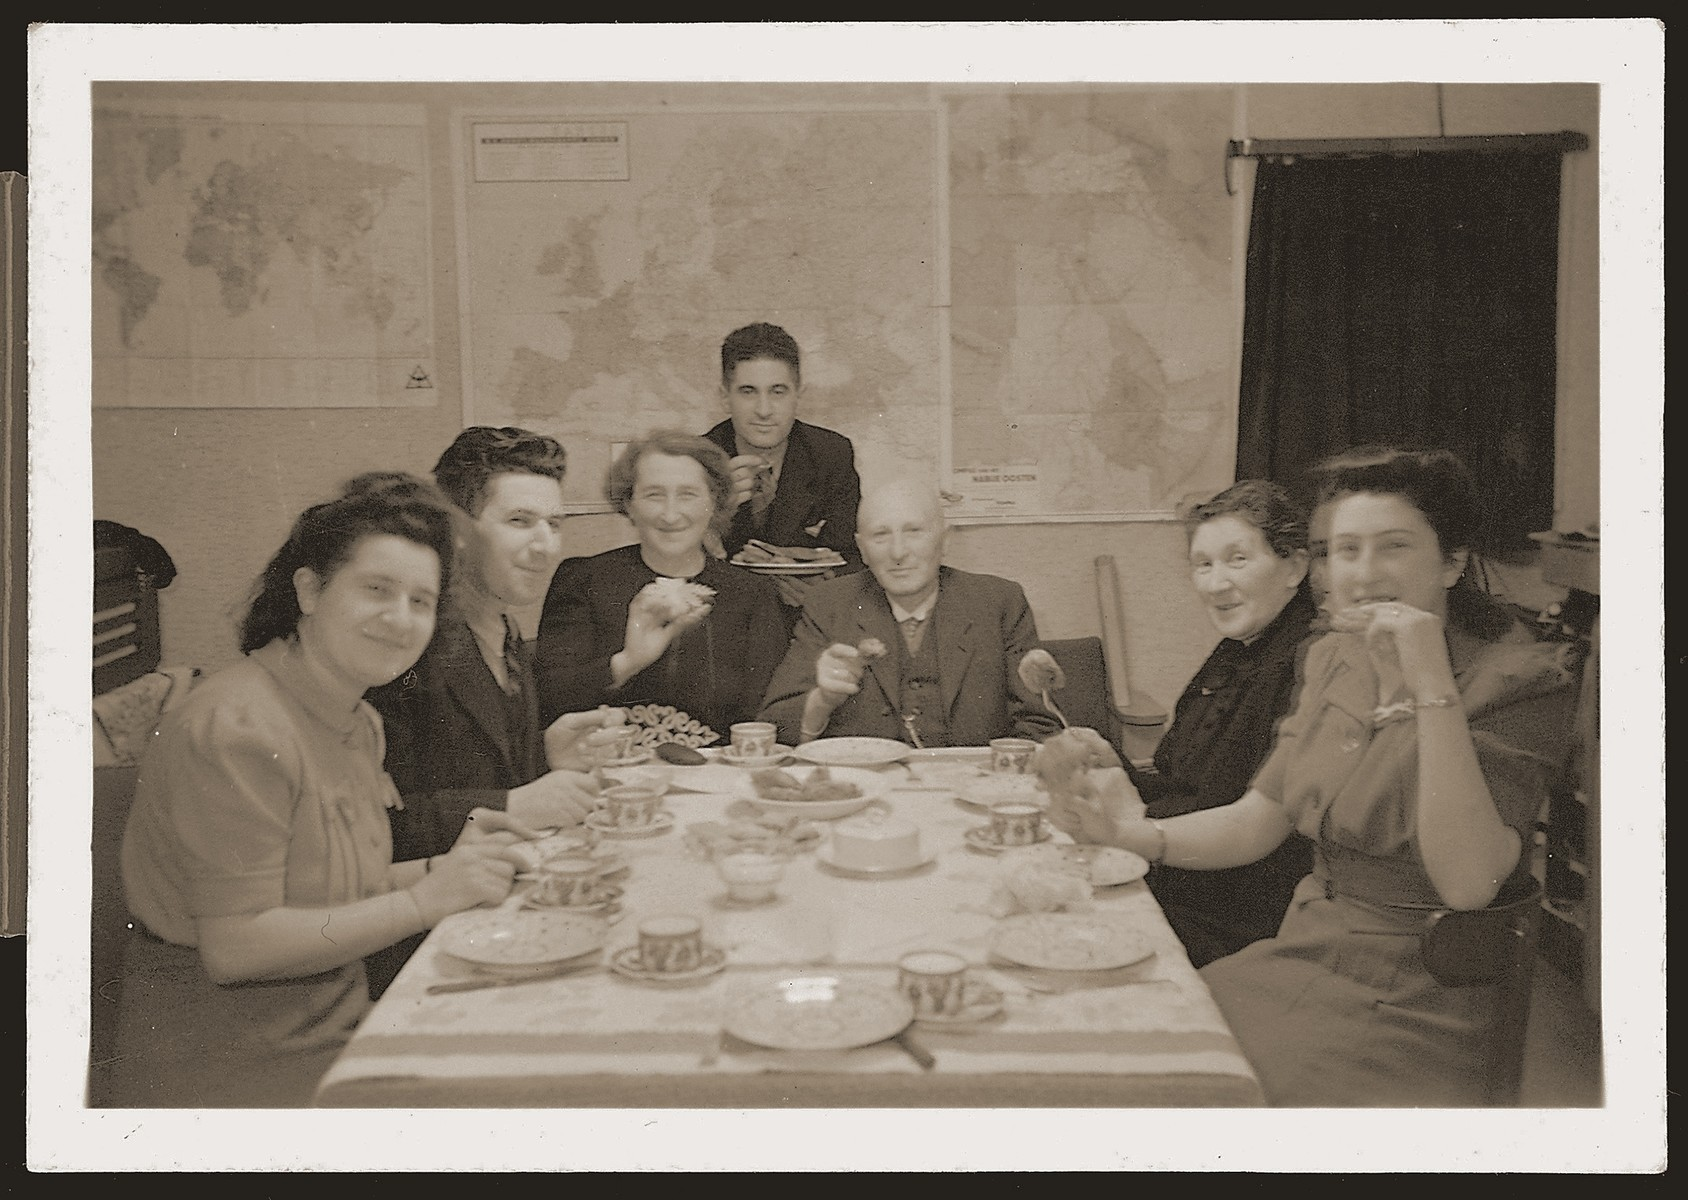 The Meijer family from Borculo is invited to dinner at the Zions in Eibergen.  It is the first meeting of the two families since their children, Bep and Sallie, began to date.  Pictured from right to left are:  Bep Meijer; Bethje Gans Zion; Joseph Meyer; Zadok Zion; Hennie Meyer Meijer; Julius Zion; and Wilhelmina Zion.  Posted on the wall behind them are maps of Europe with pins indicating the progress of the war.